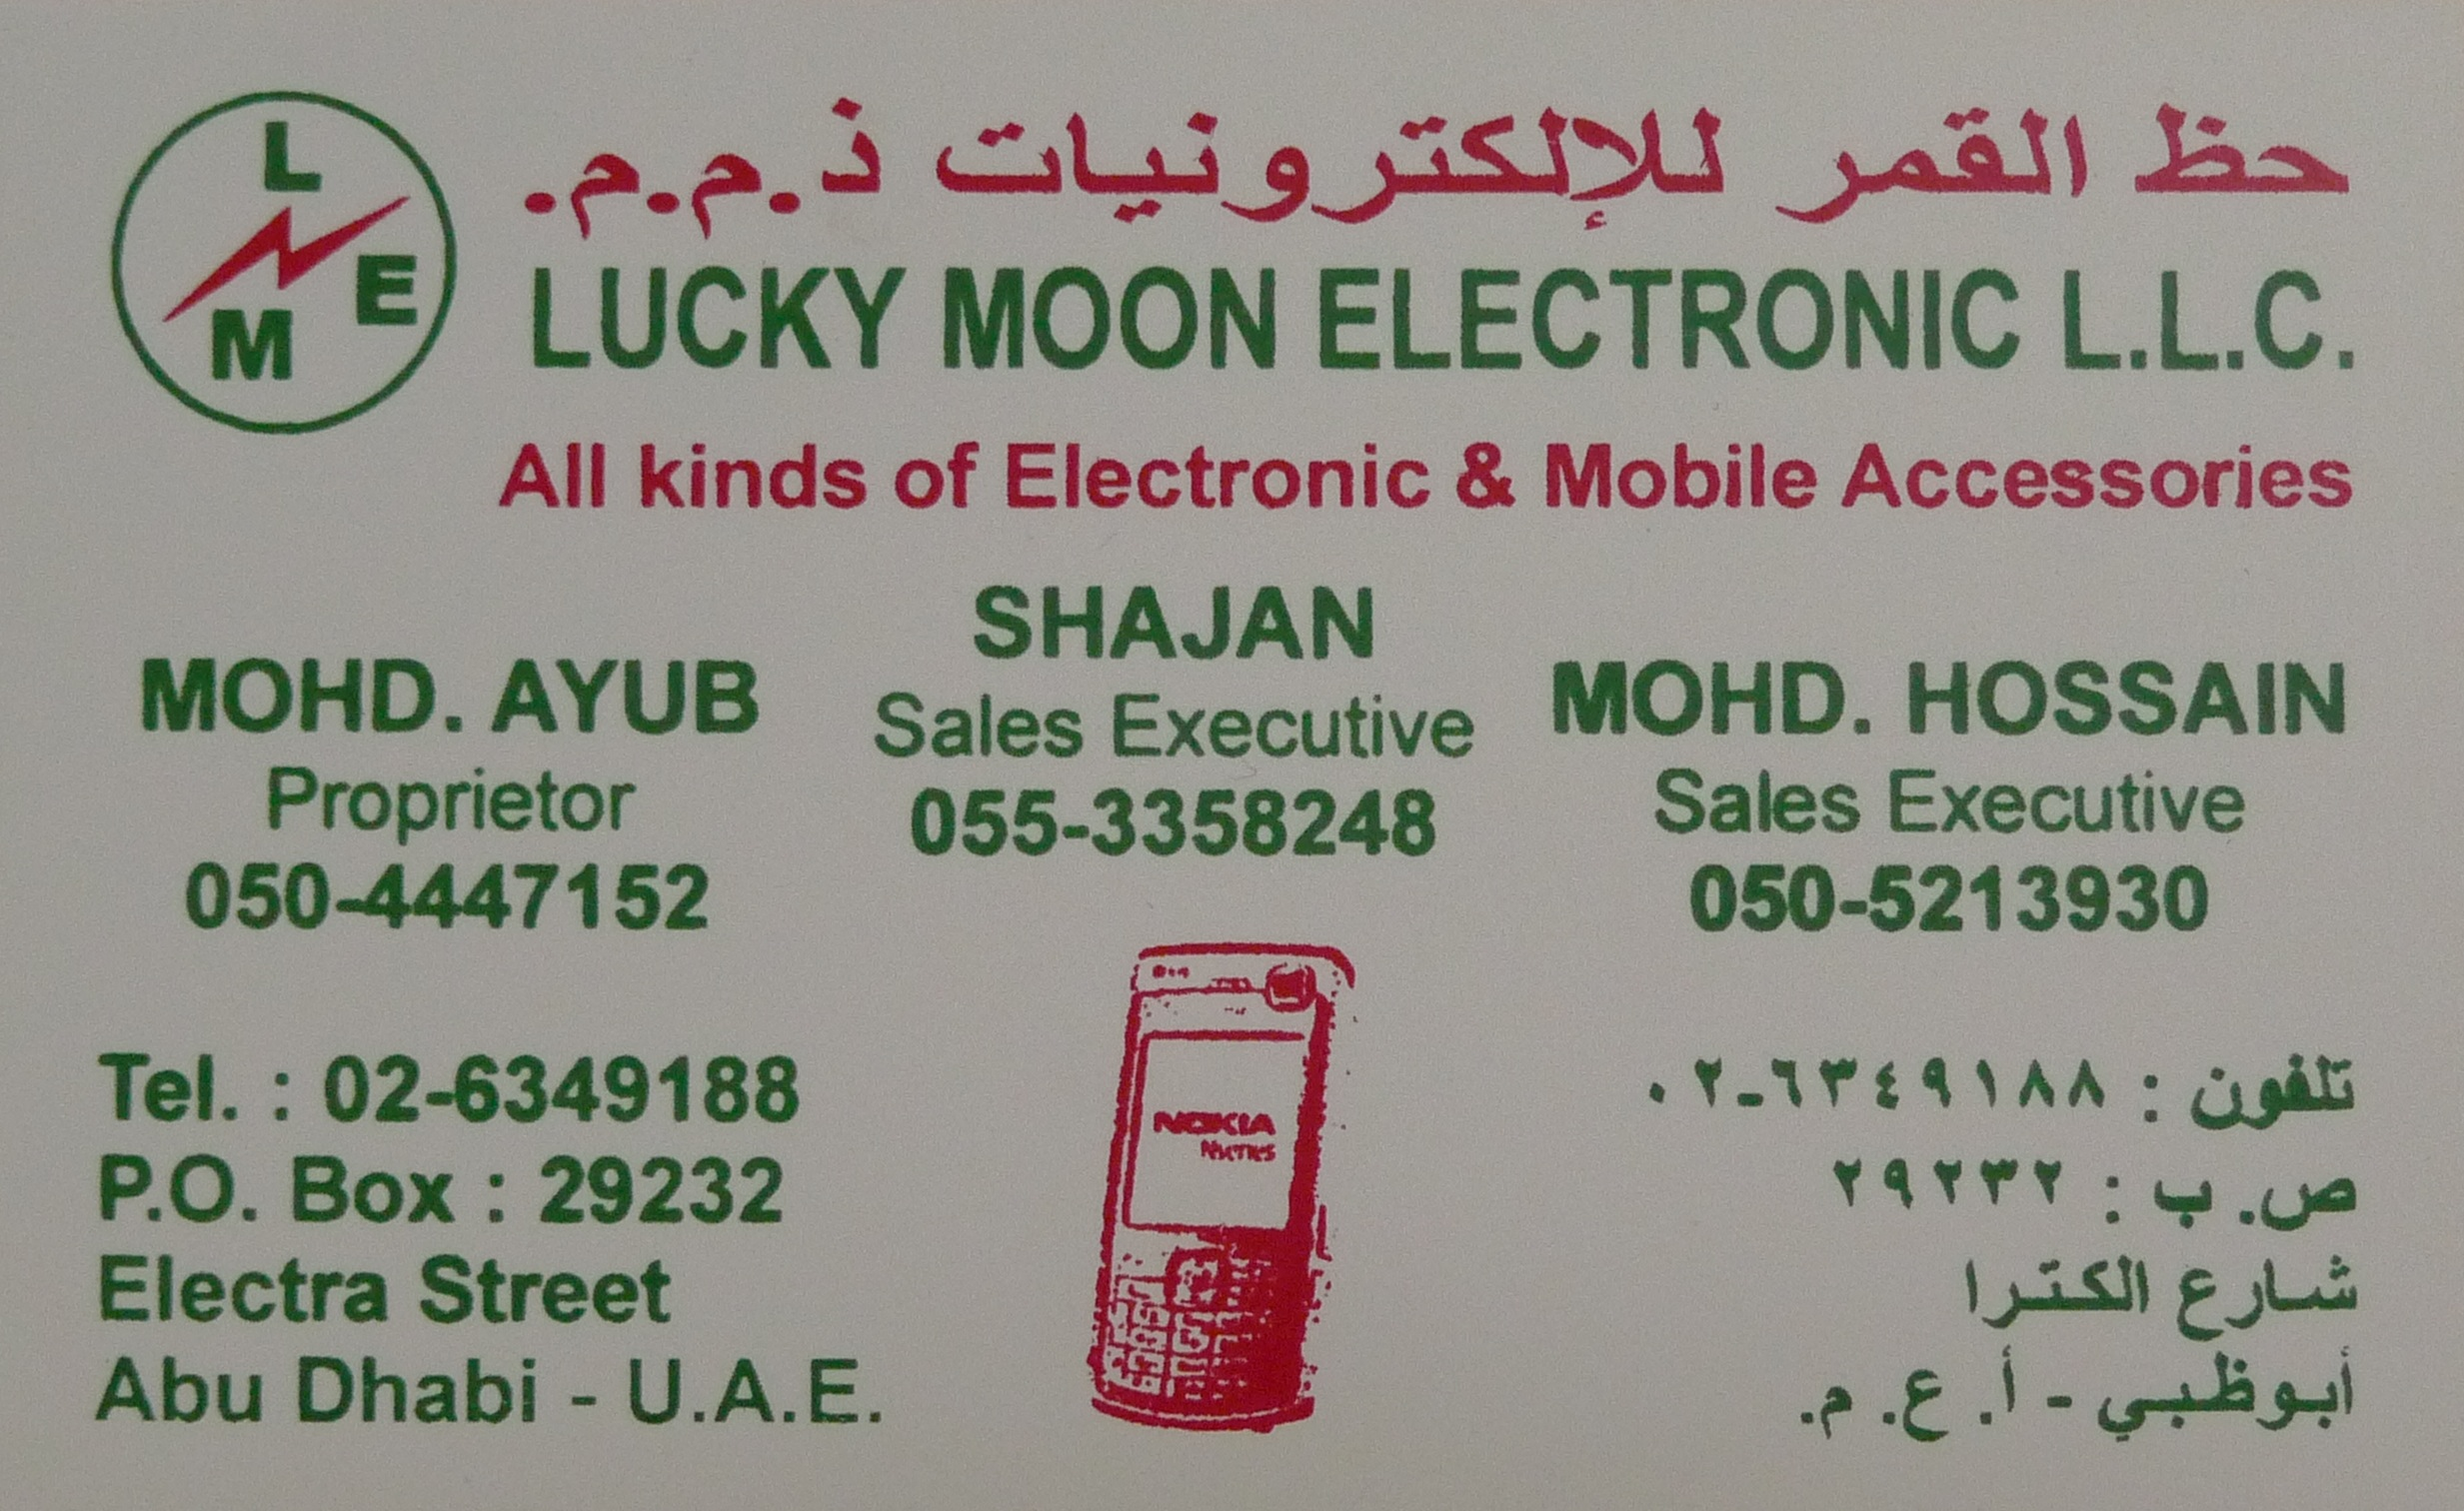 10 lucky moon electronic business card design and innovation lab sizesmax width 300px 100vw 300px magicingreecefo Gallery